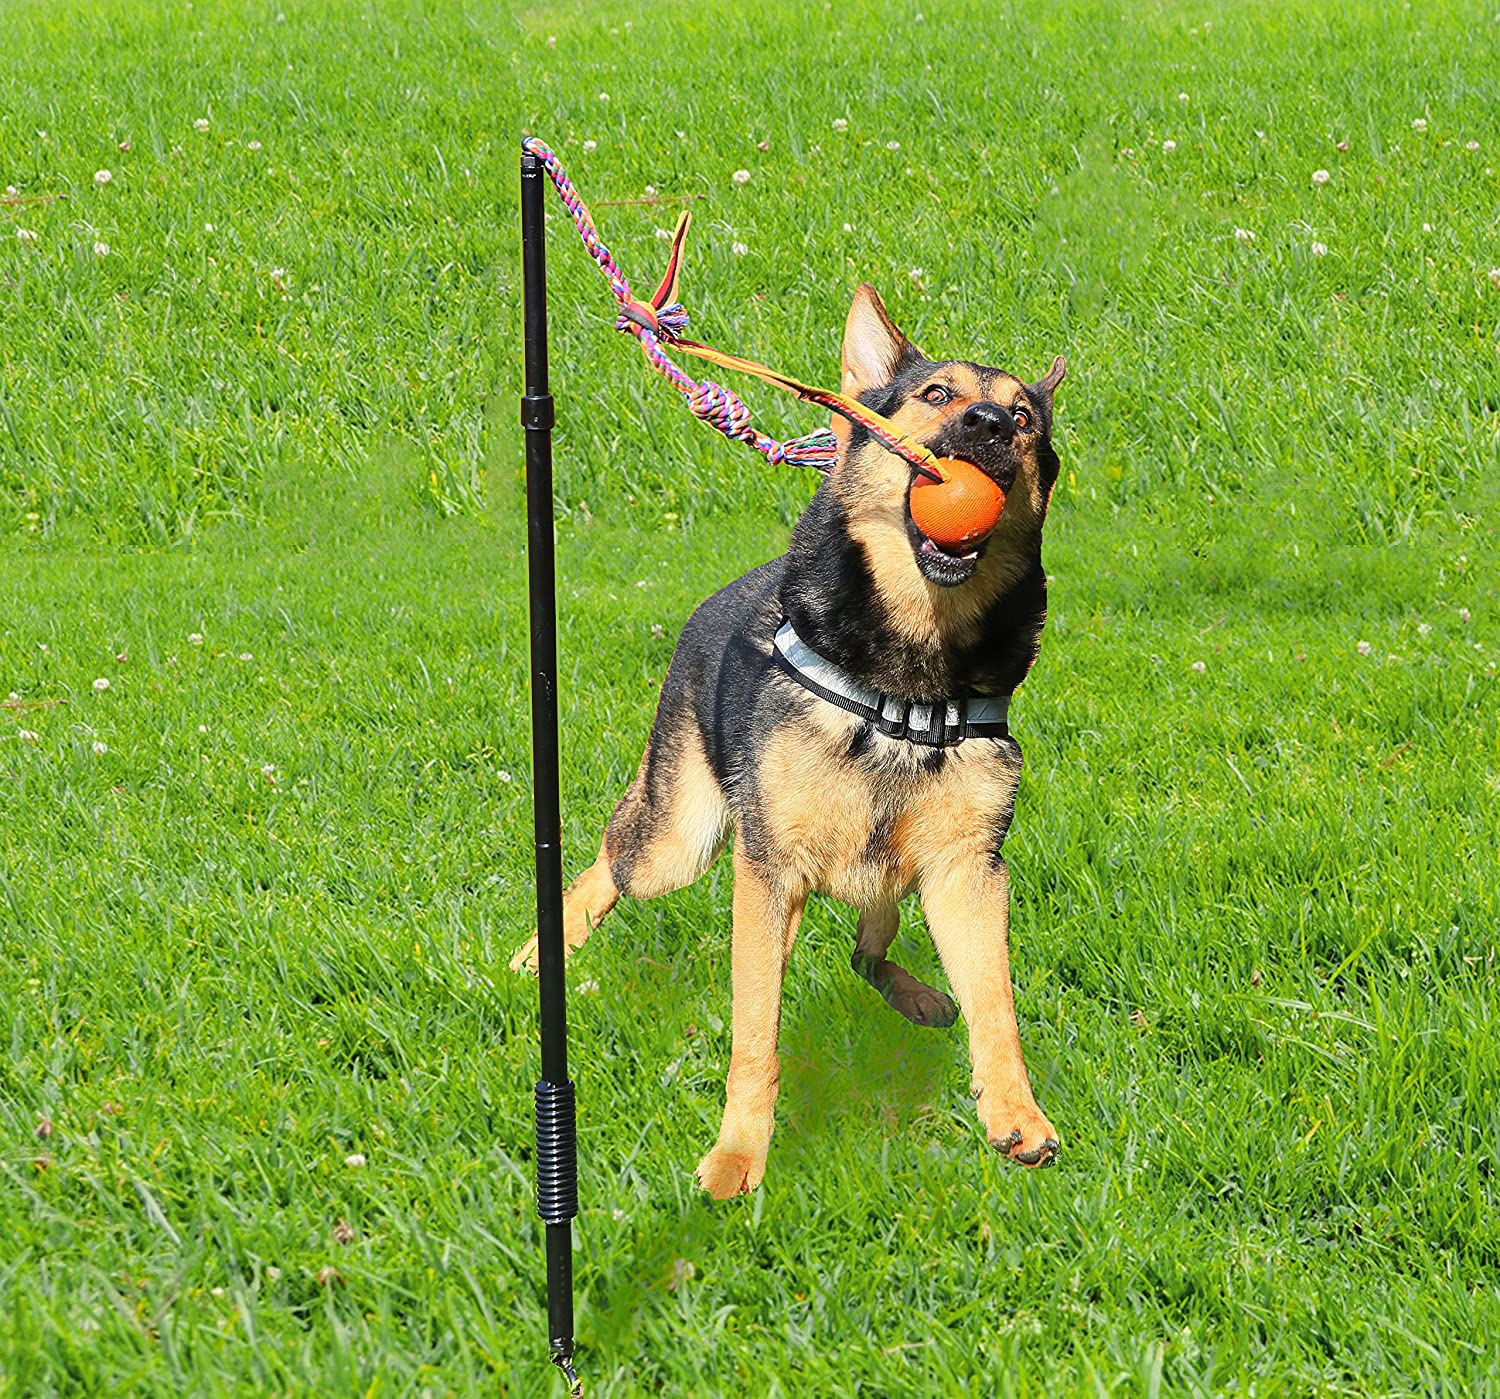 Interactive Tug Toy, Large Highland Farms Select Dog Retractable Interactive Training Tug Toy Pet Obedience Training Tug Stable Exercise Metal Pole & Spring Rod with Replaceable Chew Rope for Small Medium Large Dogs